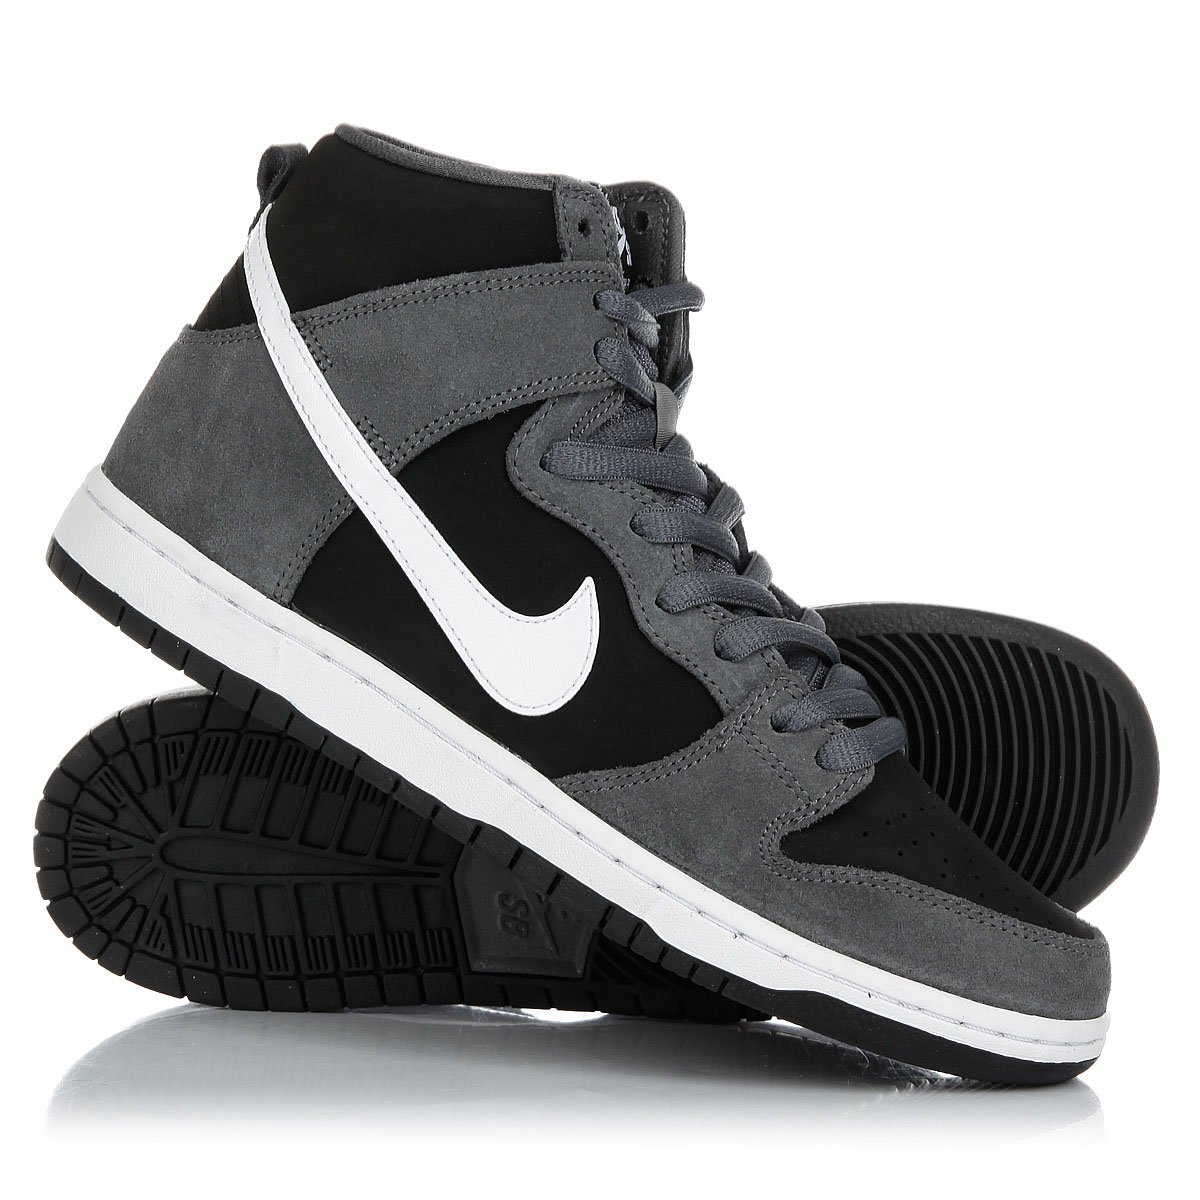 b1cfb23d Купить кеды высокие Nike Sb Zoom Dunk High Pro Dark Grey/White-Black ...